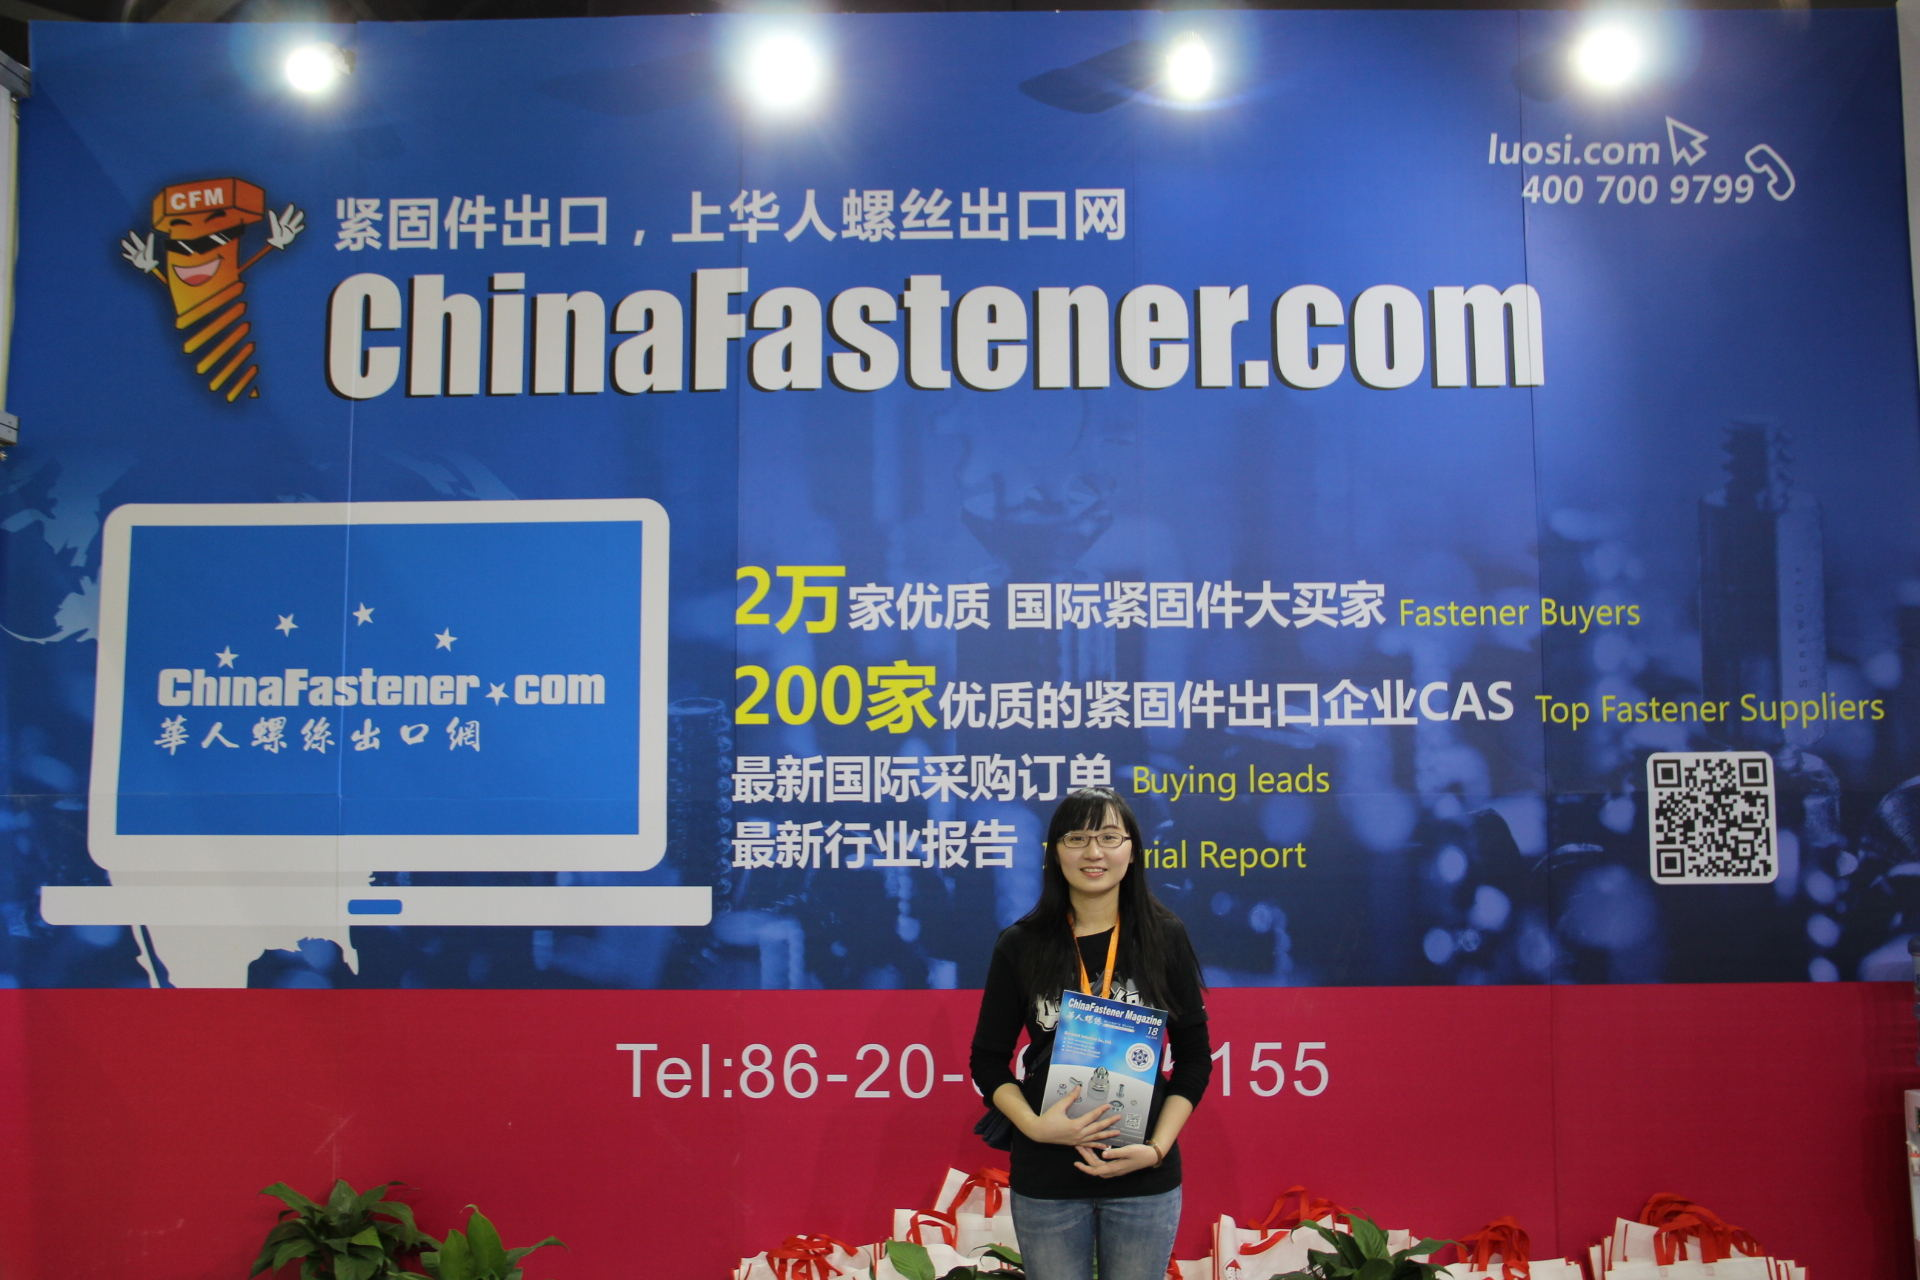 Last Professional Fastener Show of 2015: Fastener Expo Guangzhou Ended with Striking Success